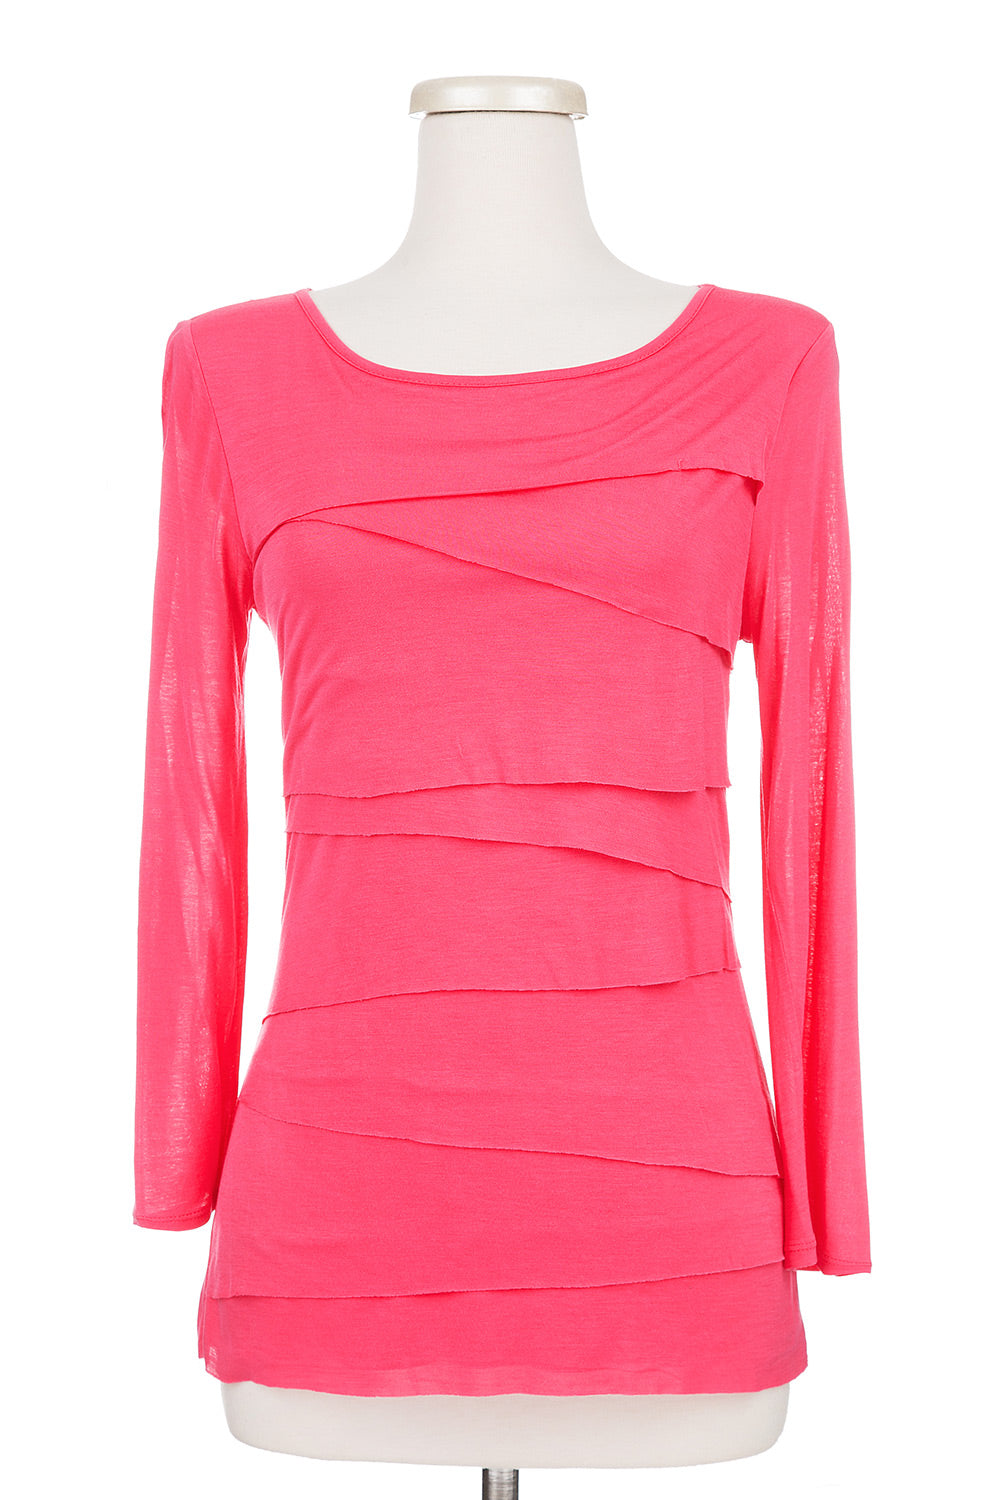 Type 1 Tickled Pink Top